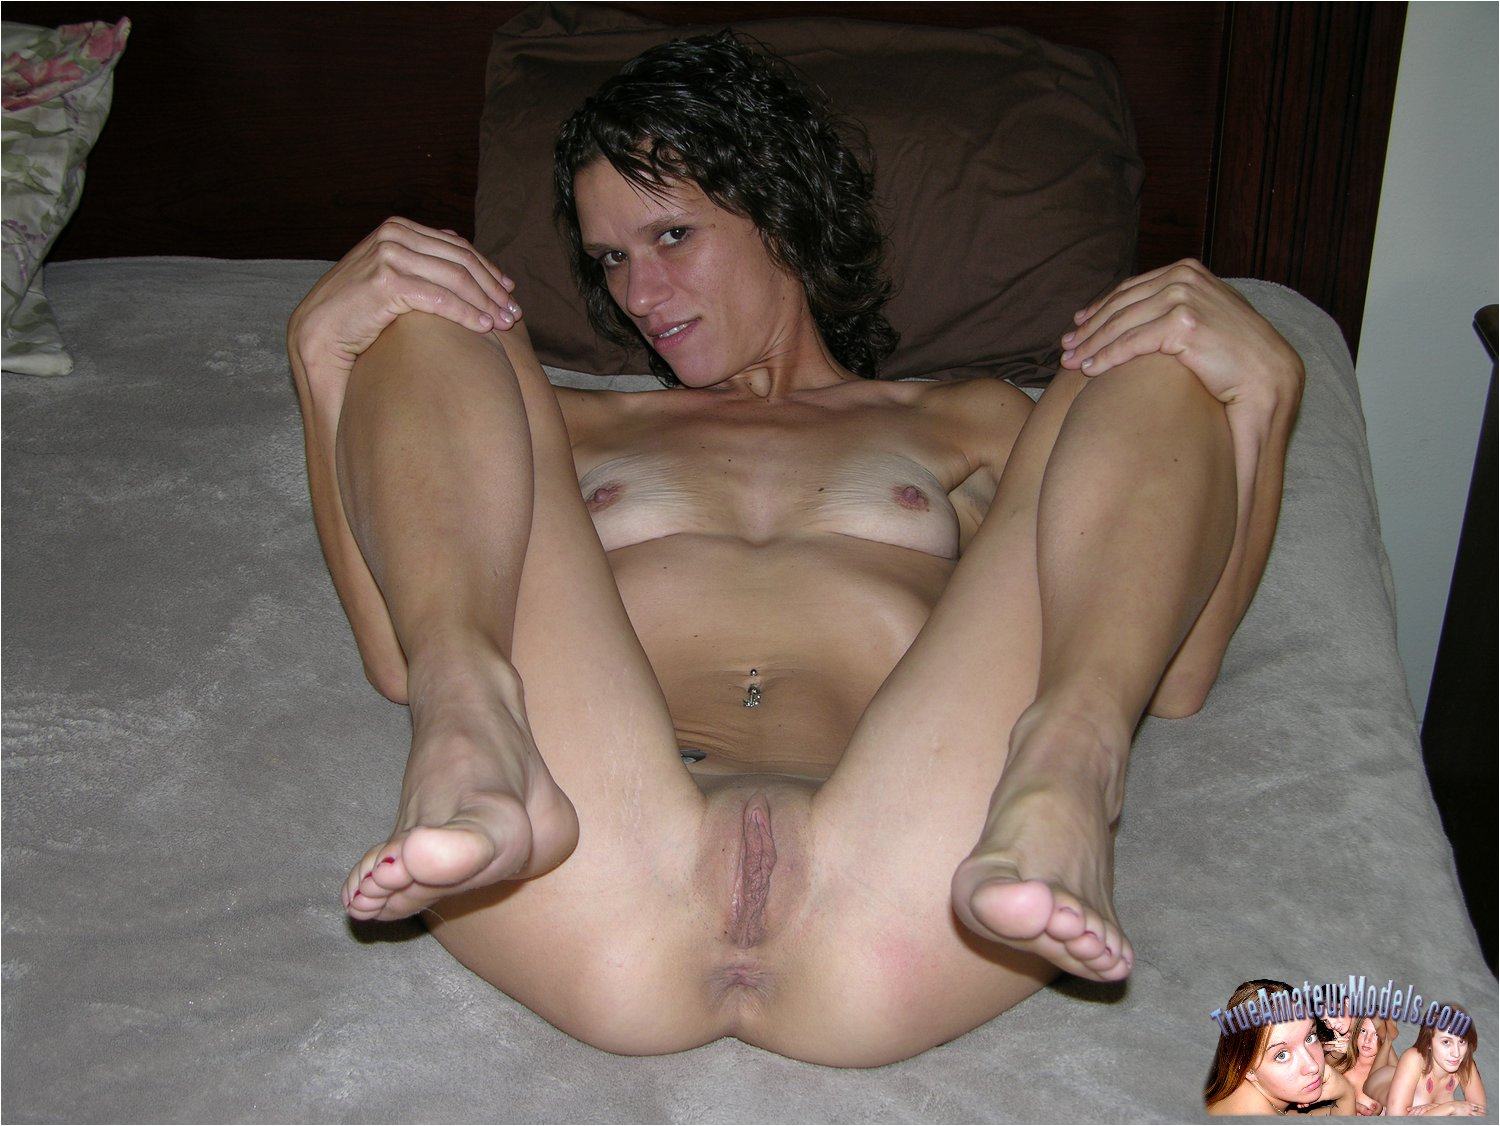 MILF Amateur Videos skinny